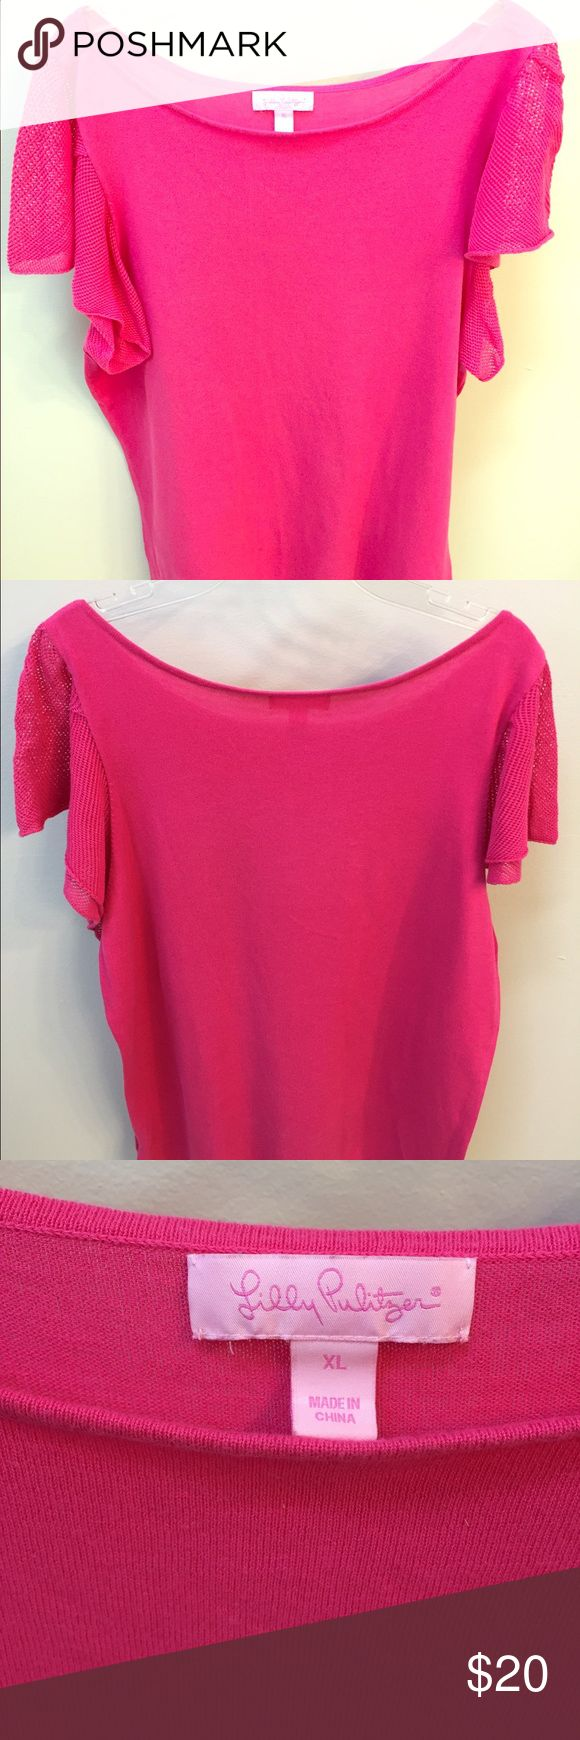 """Lilly Pulitzer's Briana Pink Short-Sleeve Top A top made for spring! Ruffle mesh sleeves with a long silhouette. Great to pair untucked with a belt or tucked into a high waist skirt. Approx. 25"""" from shoulder to hem. Size: XL. Great condition, only worn a few times. Lilly Pulitzer Tops Tees - Short Sleeve"""